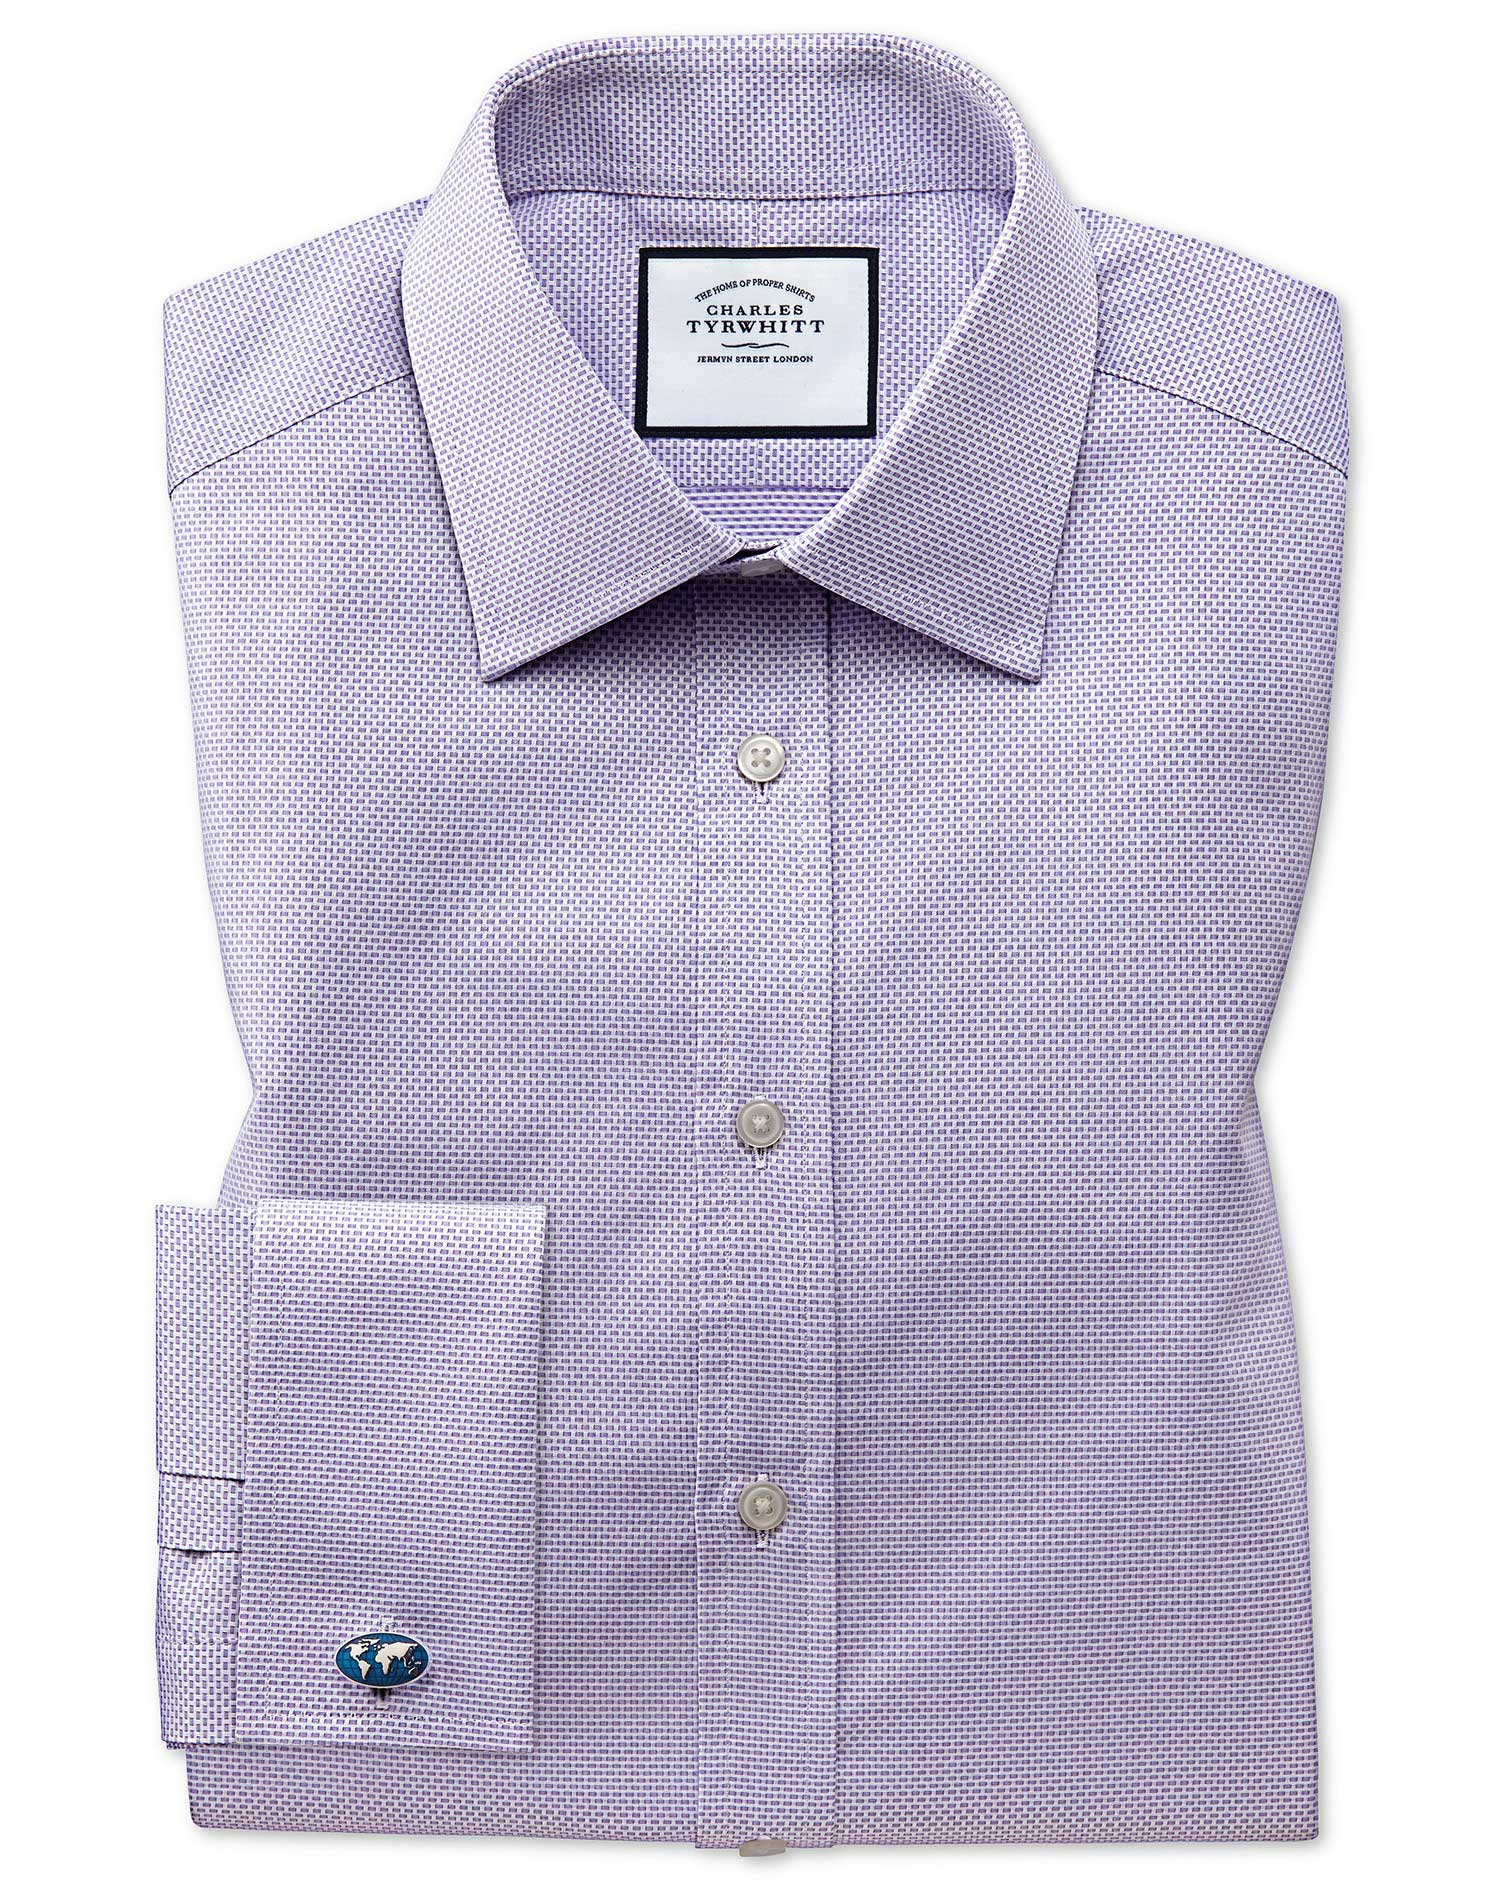 Extra Slim Fit Lilac Cube Weave Egyptian Cotton Formal Shirt Single Cuff Size 15/34 by Charles Tyrwh